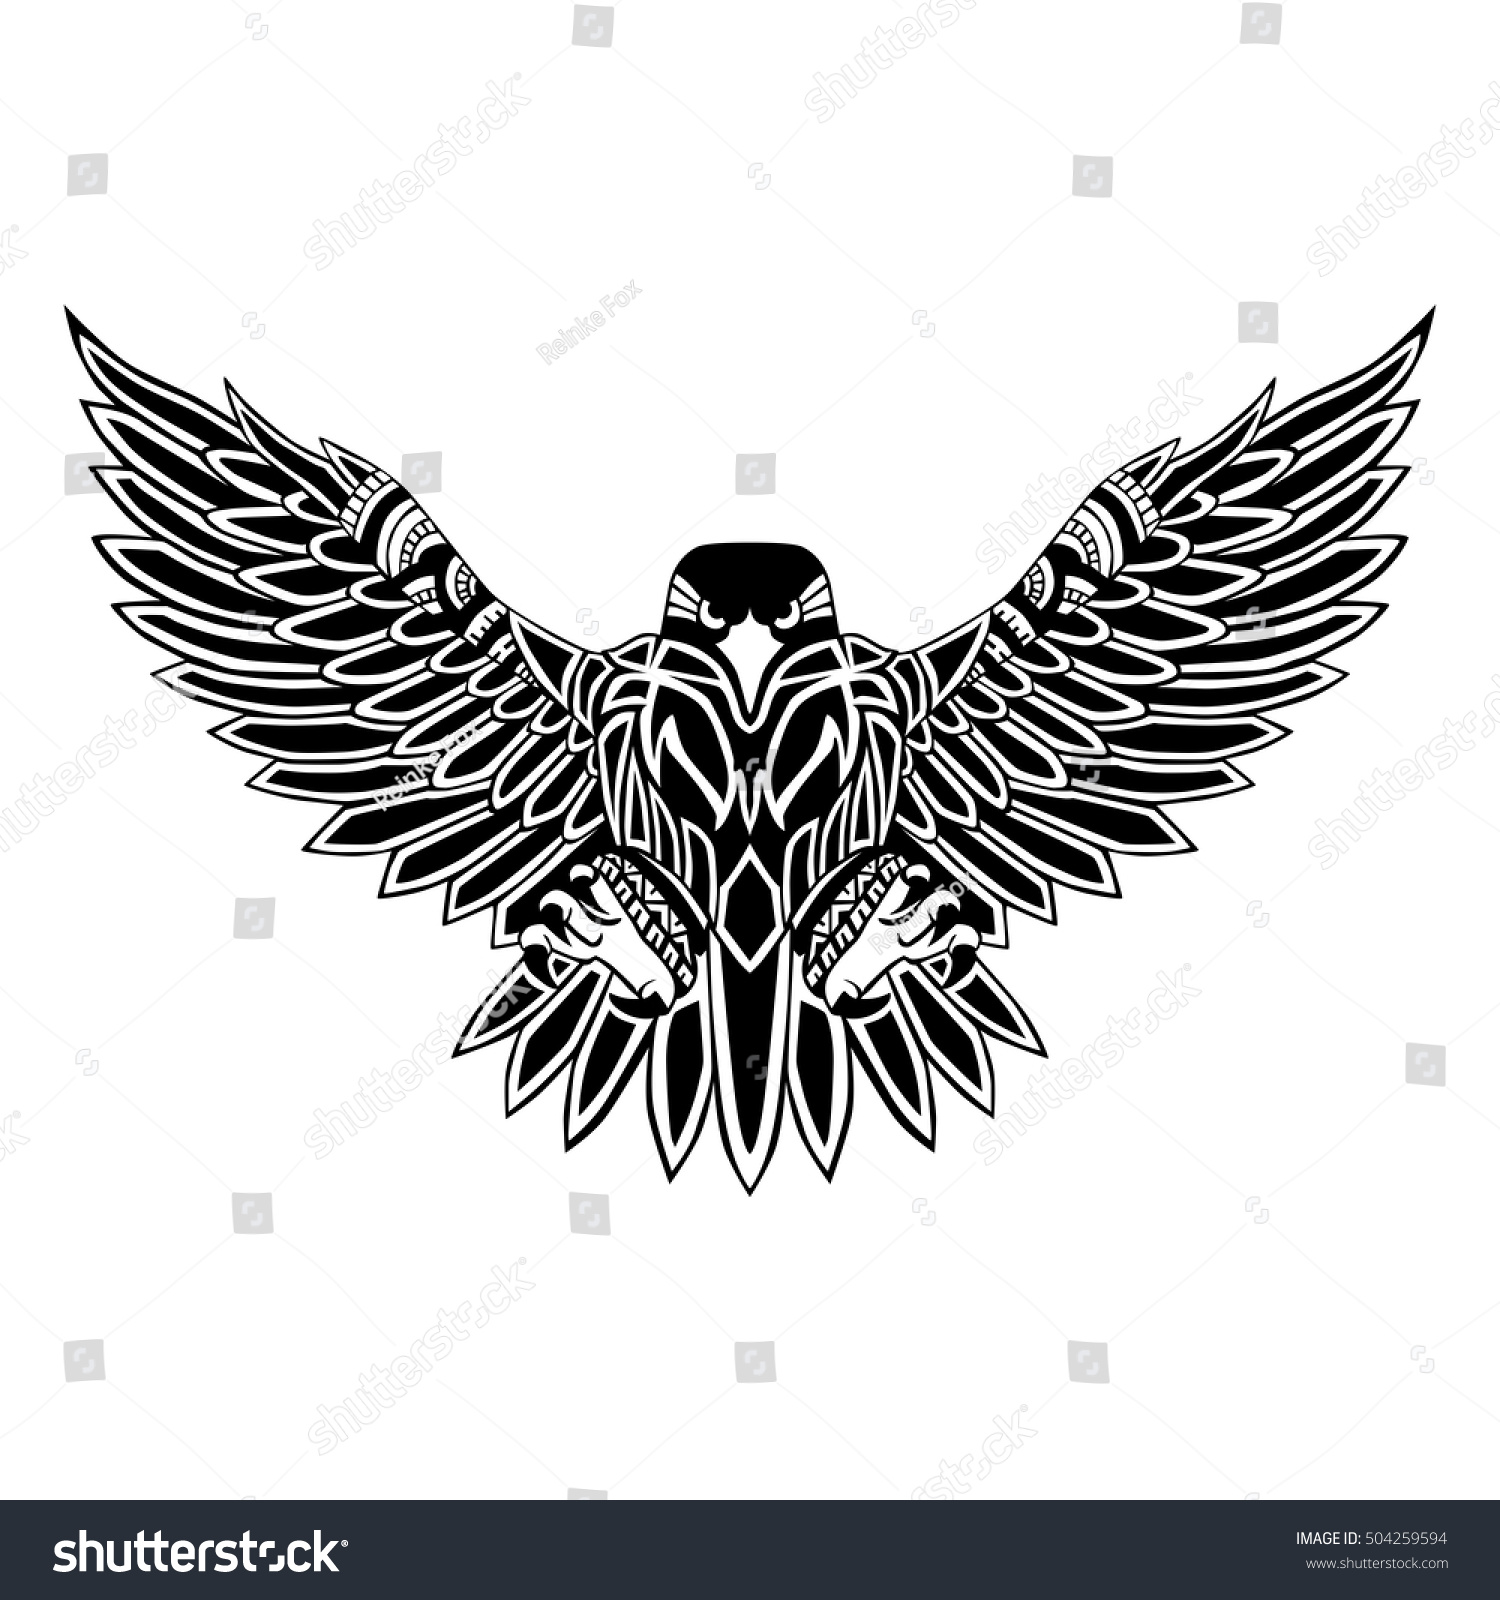 Flying eagle black silhouette with a pattern on its body hand drawing in ethnic style tattoo design stock photo